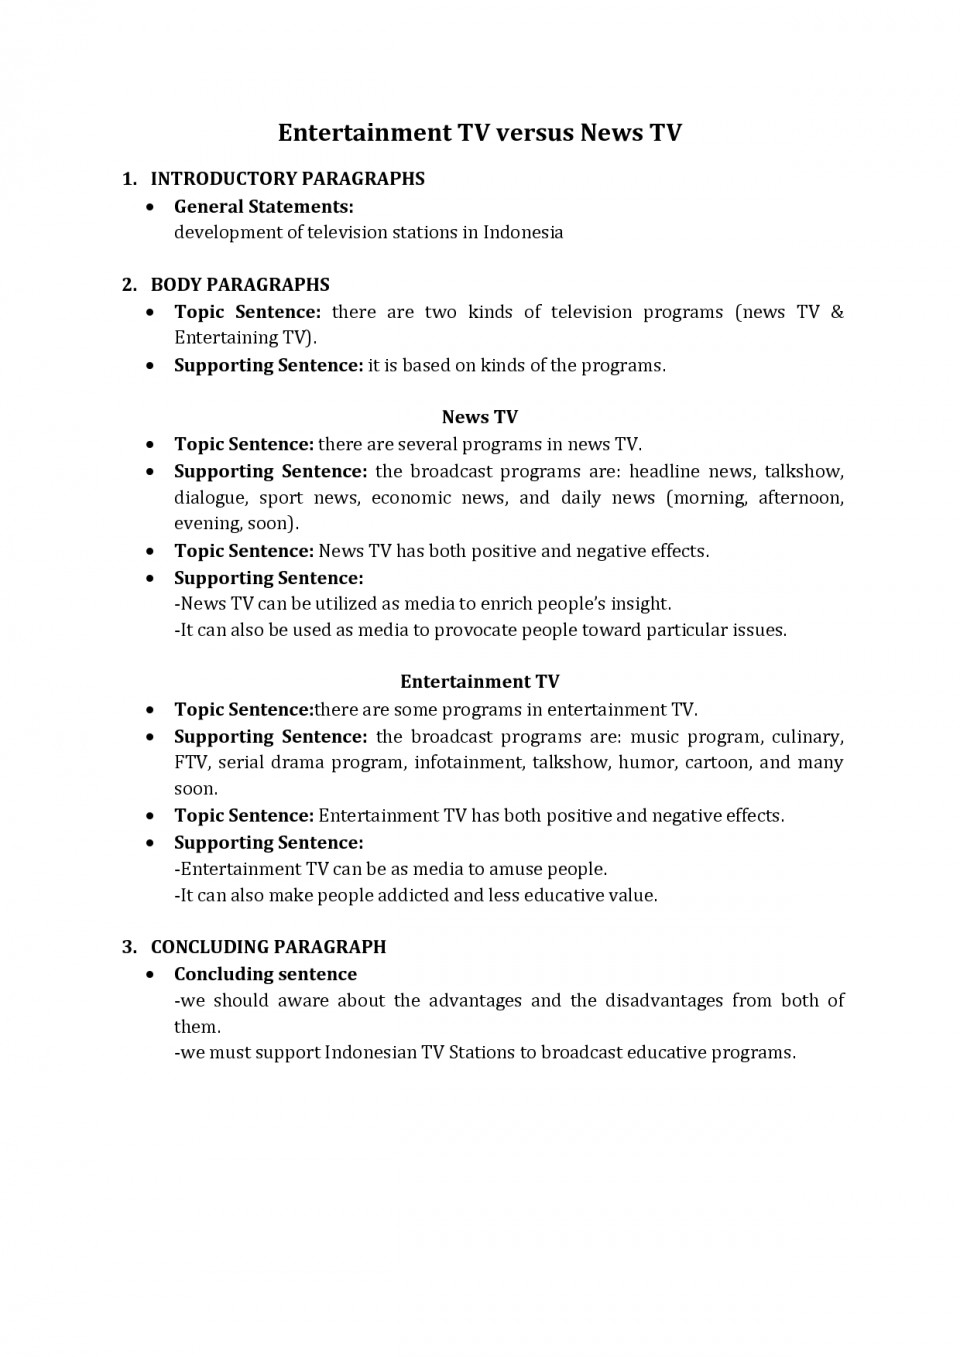 Georgia institute of technology mba essay questions